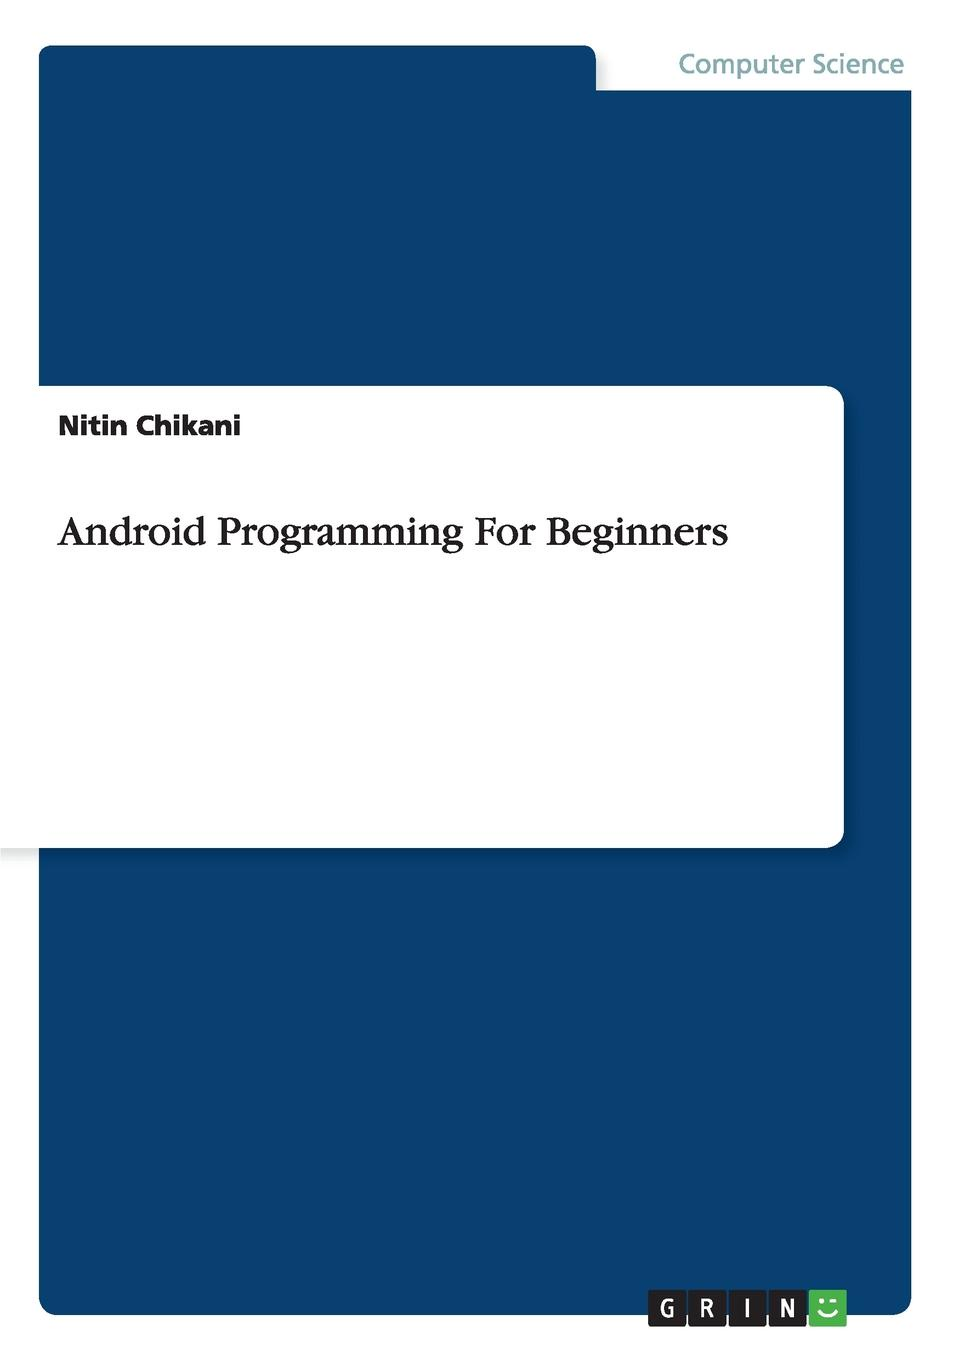 Nitin Chikani Android Programming For Beginners carprie new replacement atx motherboard switch on off reset power cable for pc computer 17aug23 dropshipping